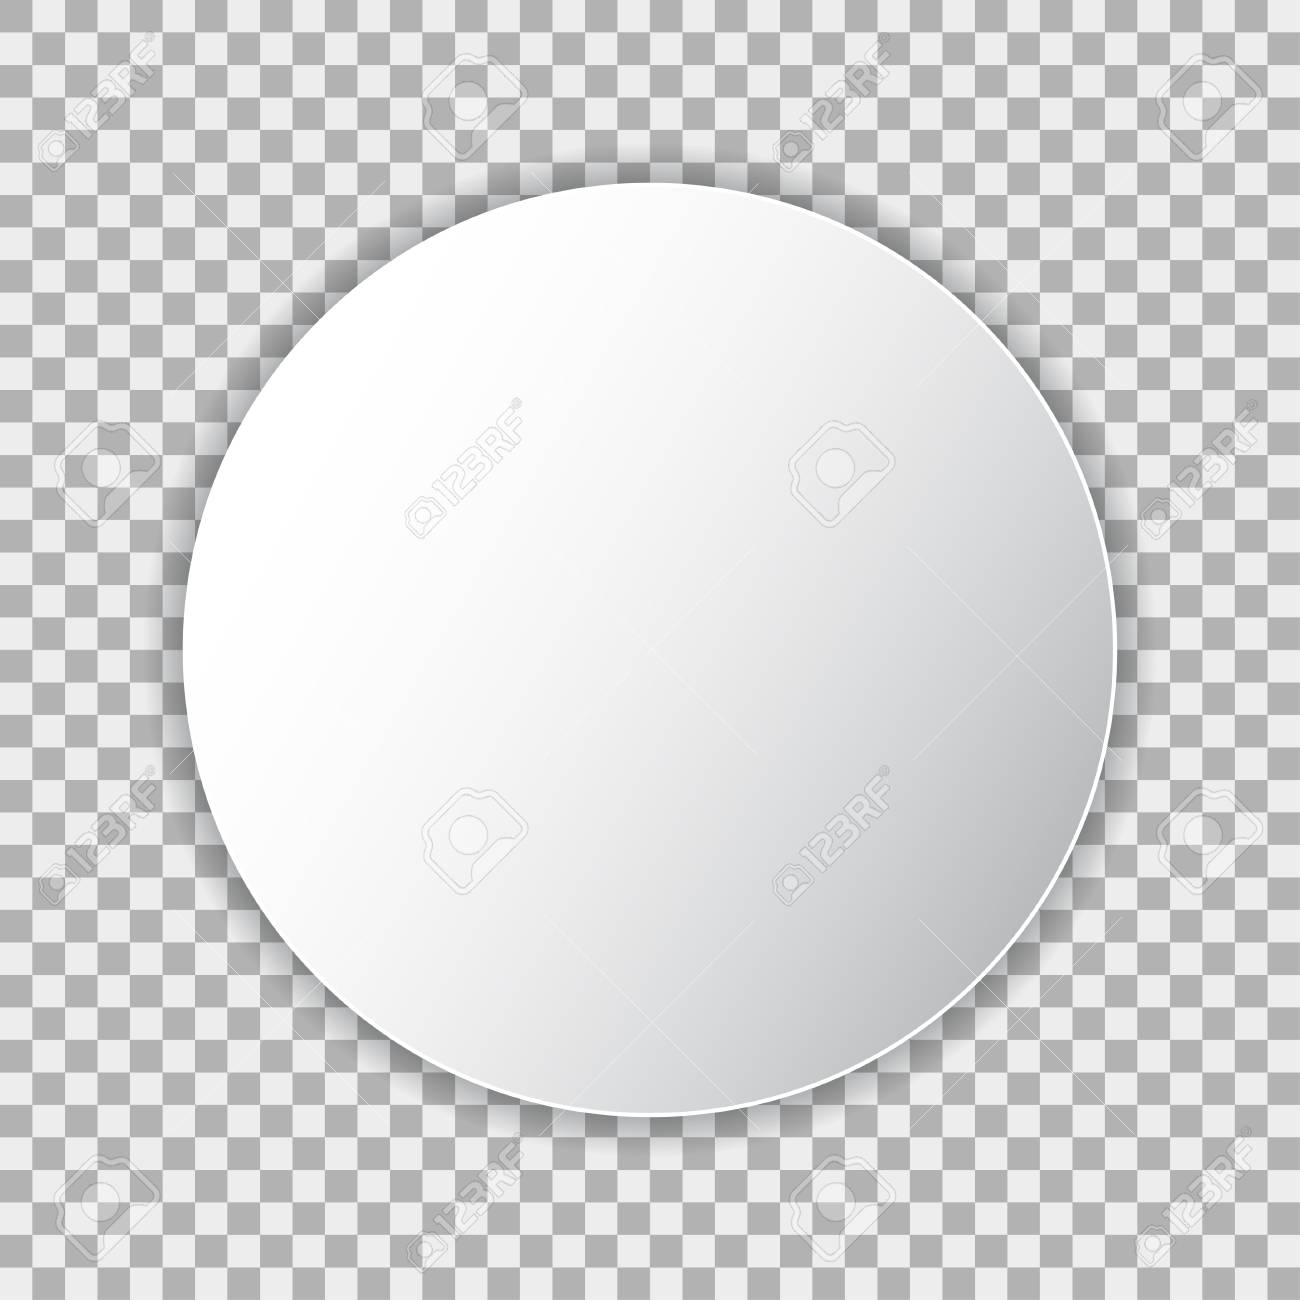 White Circle No Background & Free White Circle No Background.